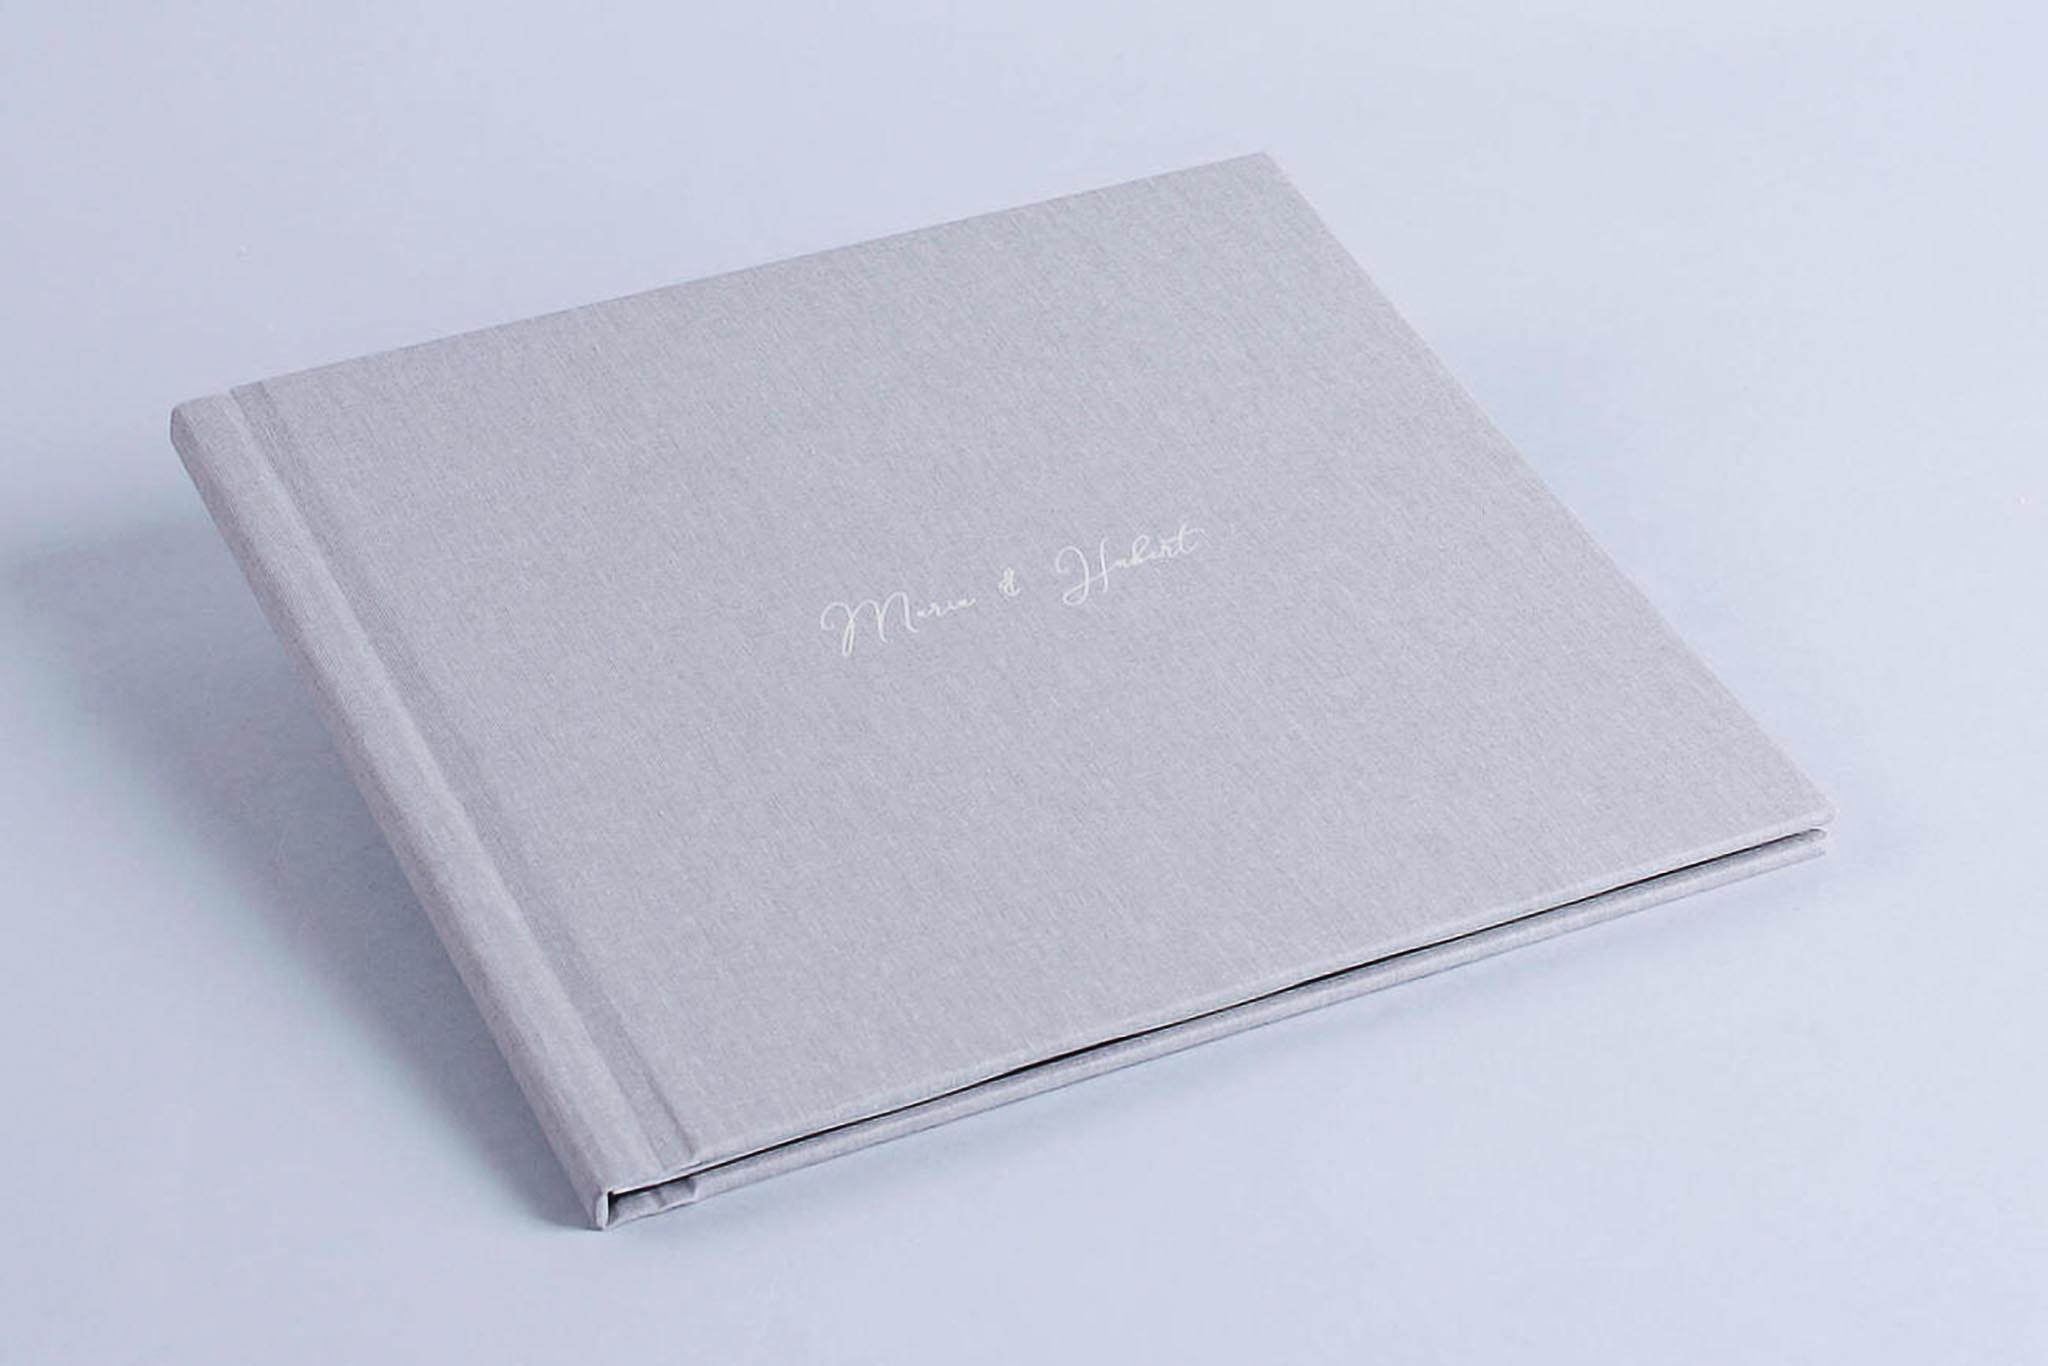 Photo-Book-Pro-with-custom-hardcover-text-logo-professional-wedding-photo-album-book-for-photographers-nphoto-mohawk-eggshell-paper-photo-book-supplier_1